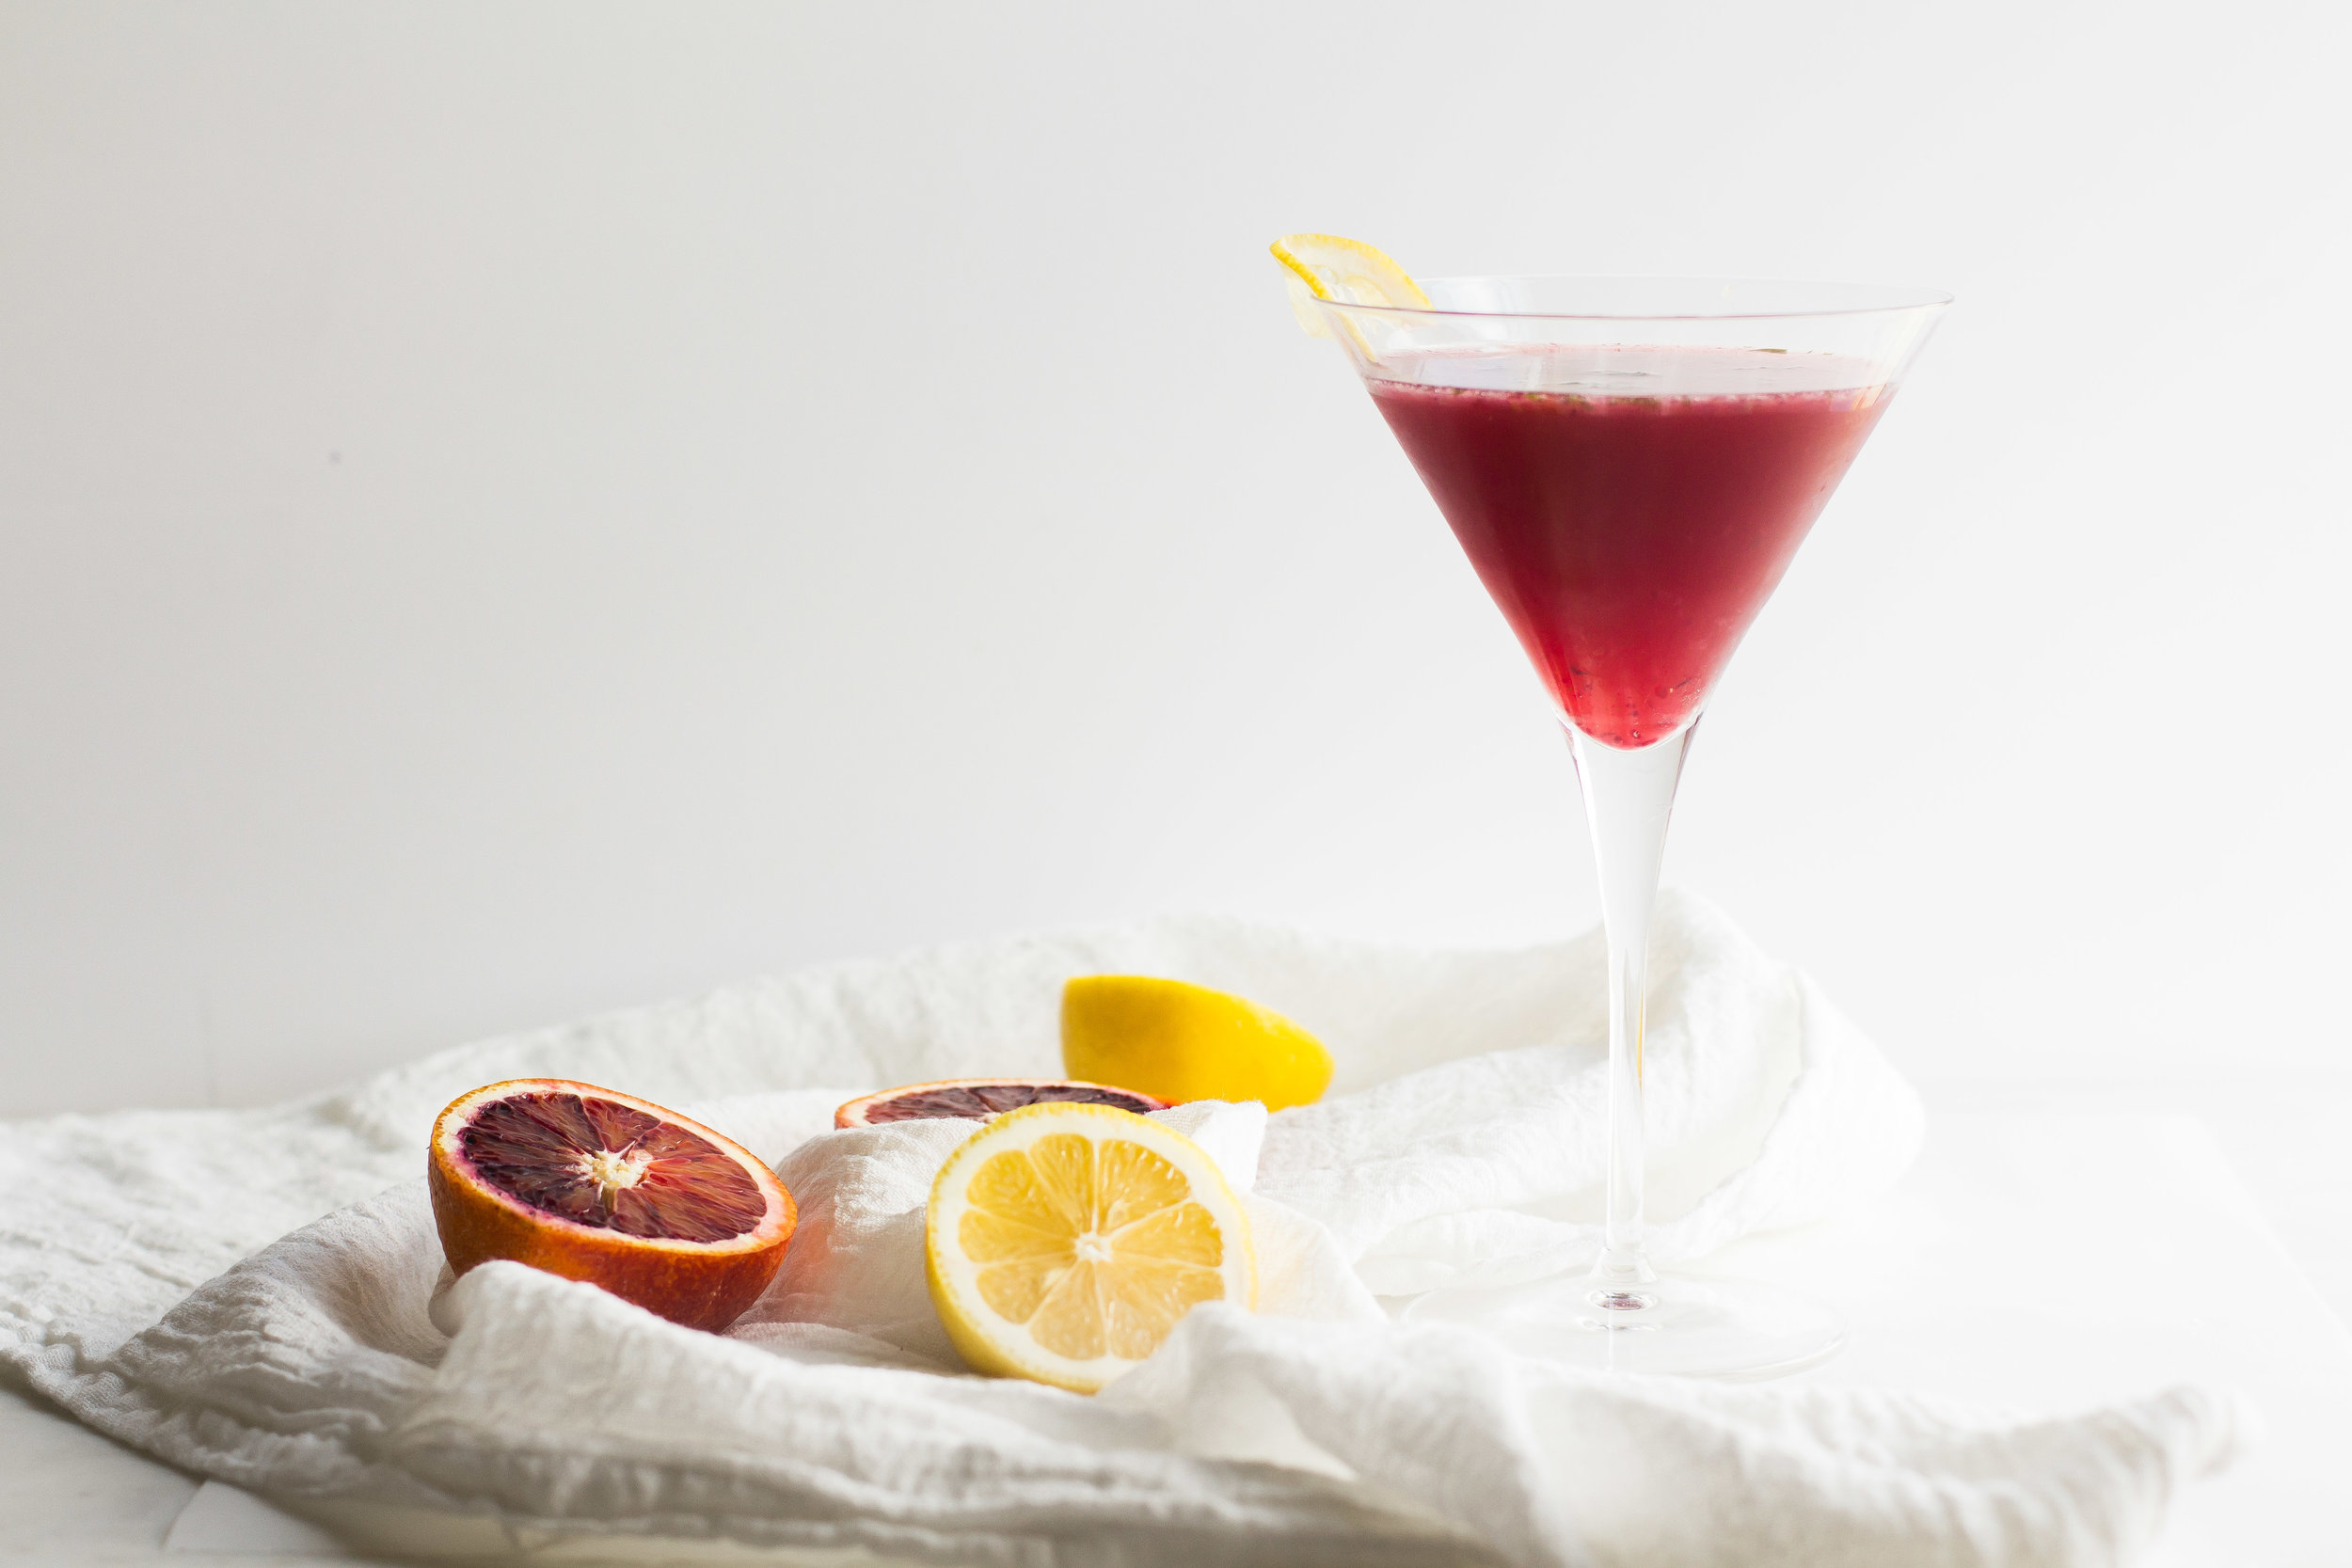 Citrus-Brandy Cocktail - Sarah J. Hauser